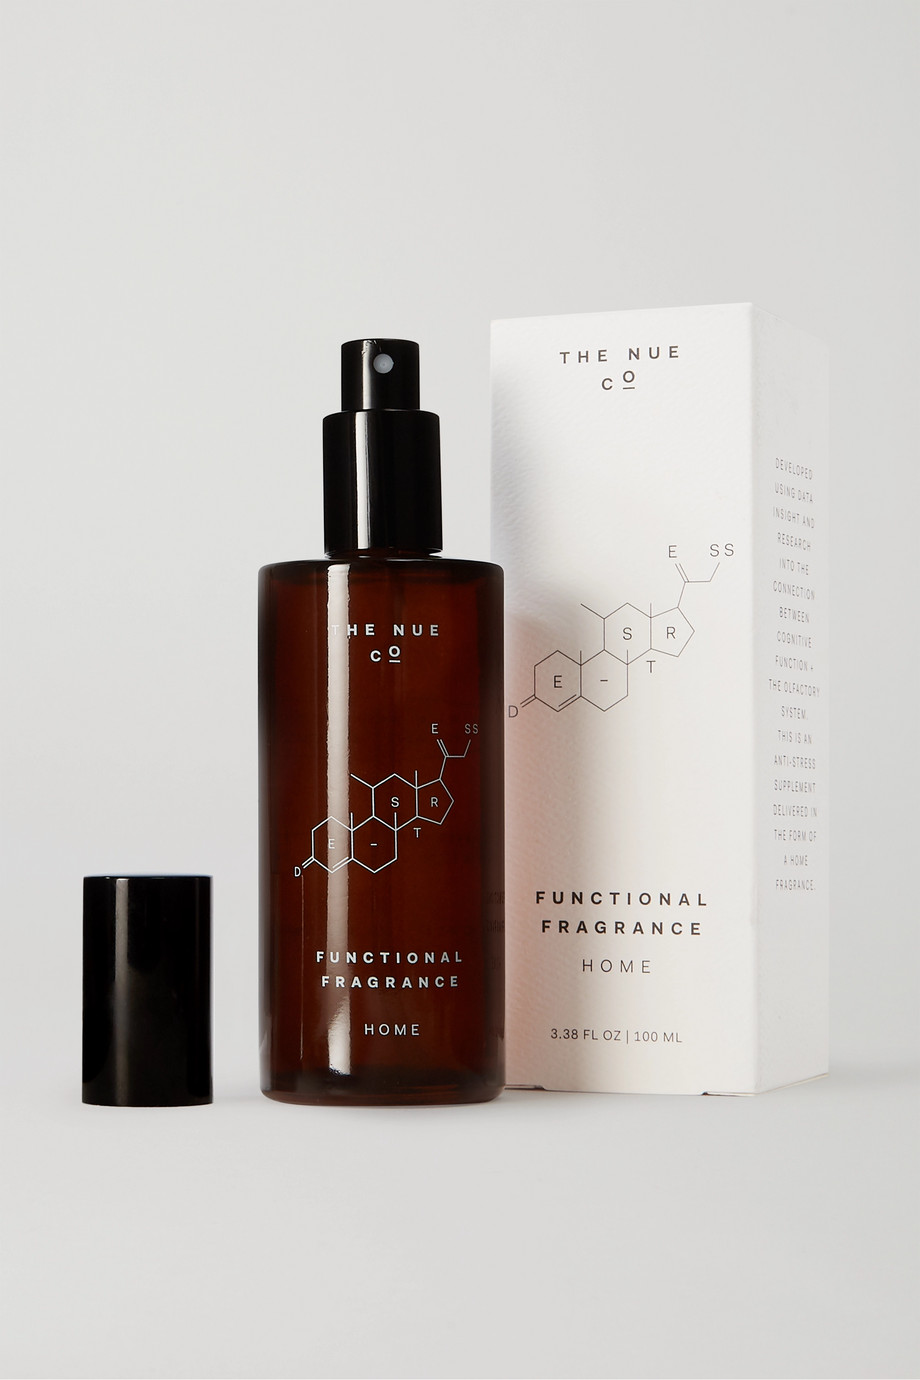 The Nue Co. Functional Fragrance - Home, 100ml